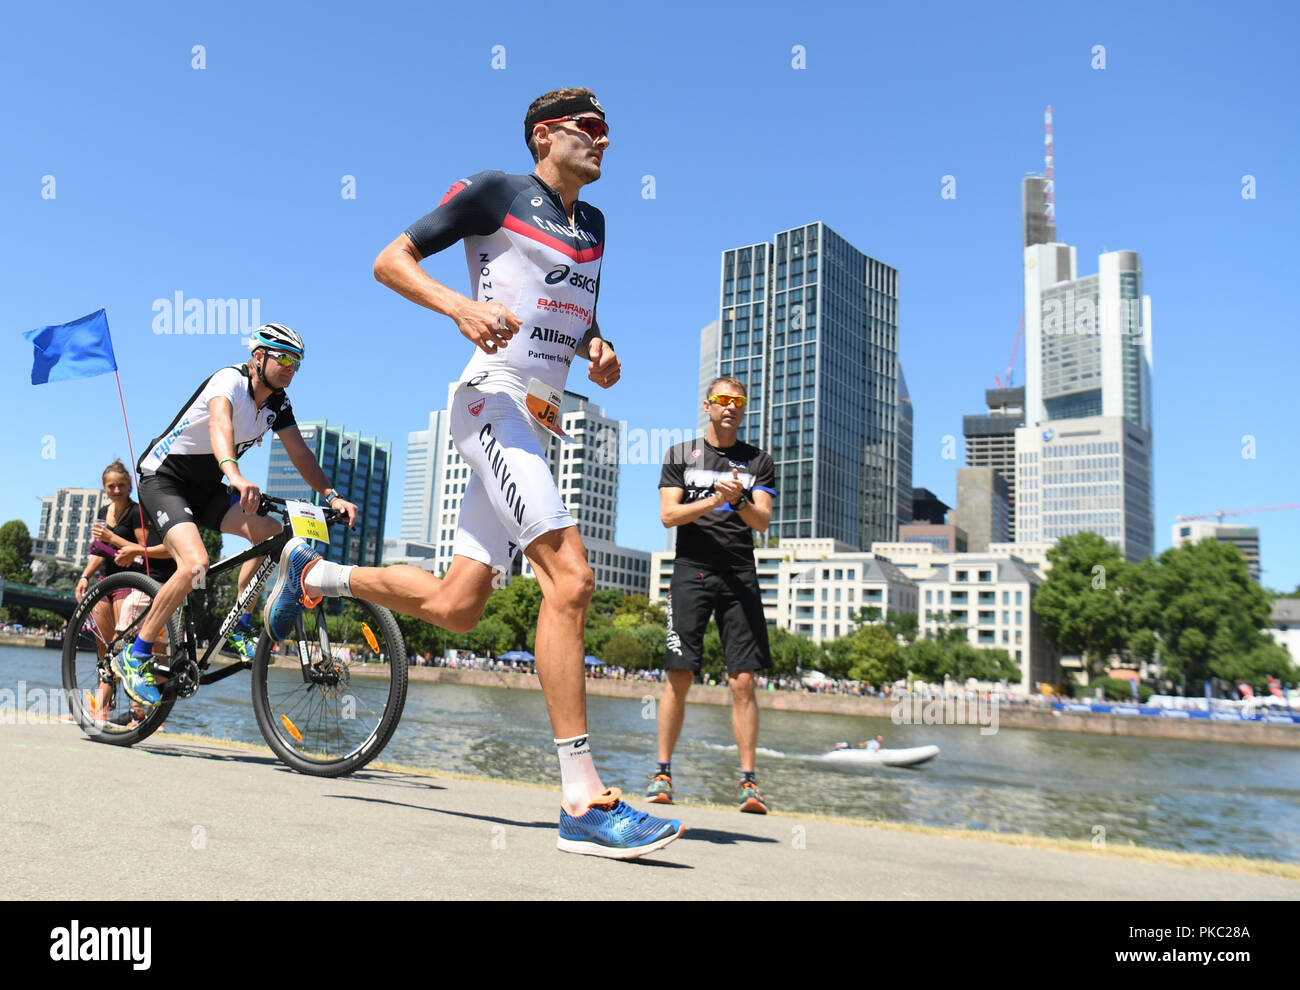 99cc521e92a Ironman Triathlon World Champion Stock Photos   Ironman Triathlon ...